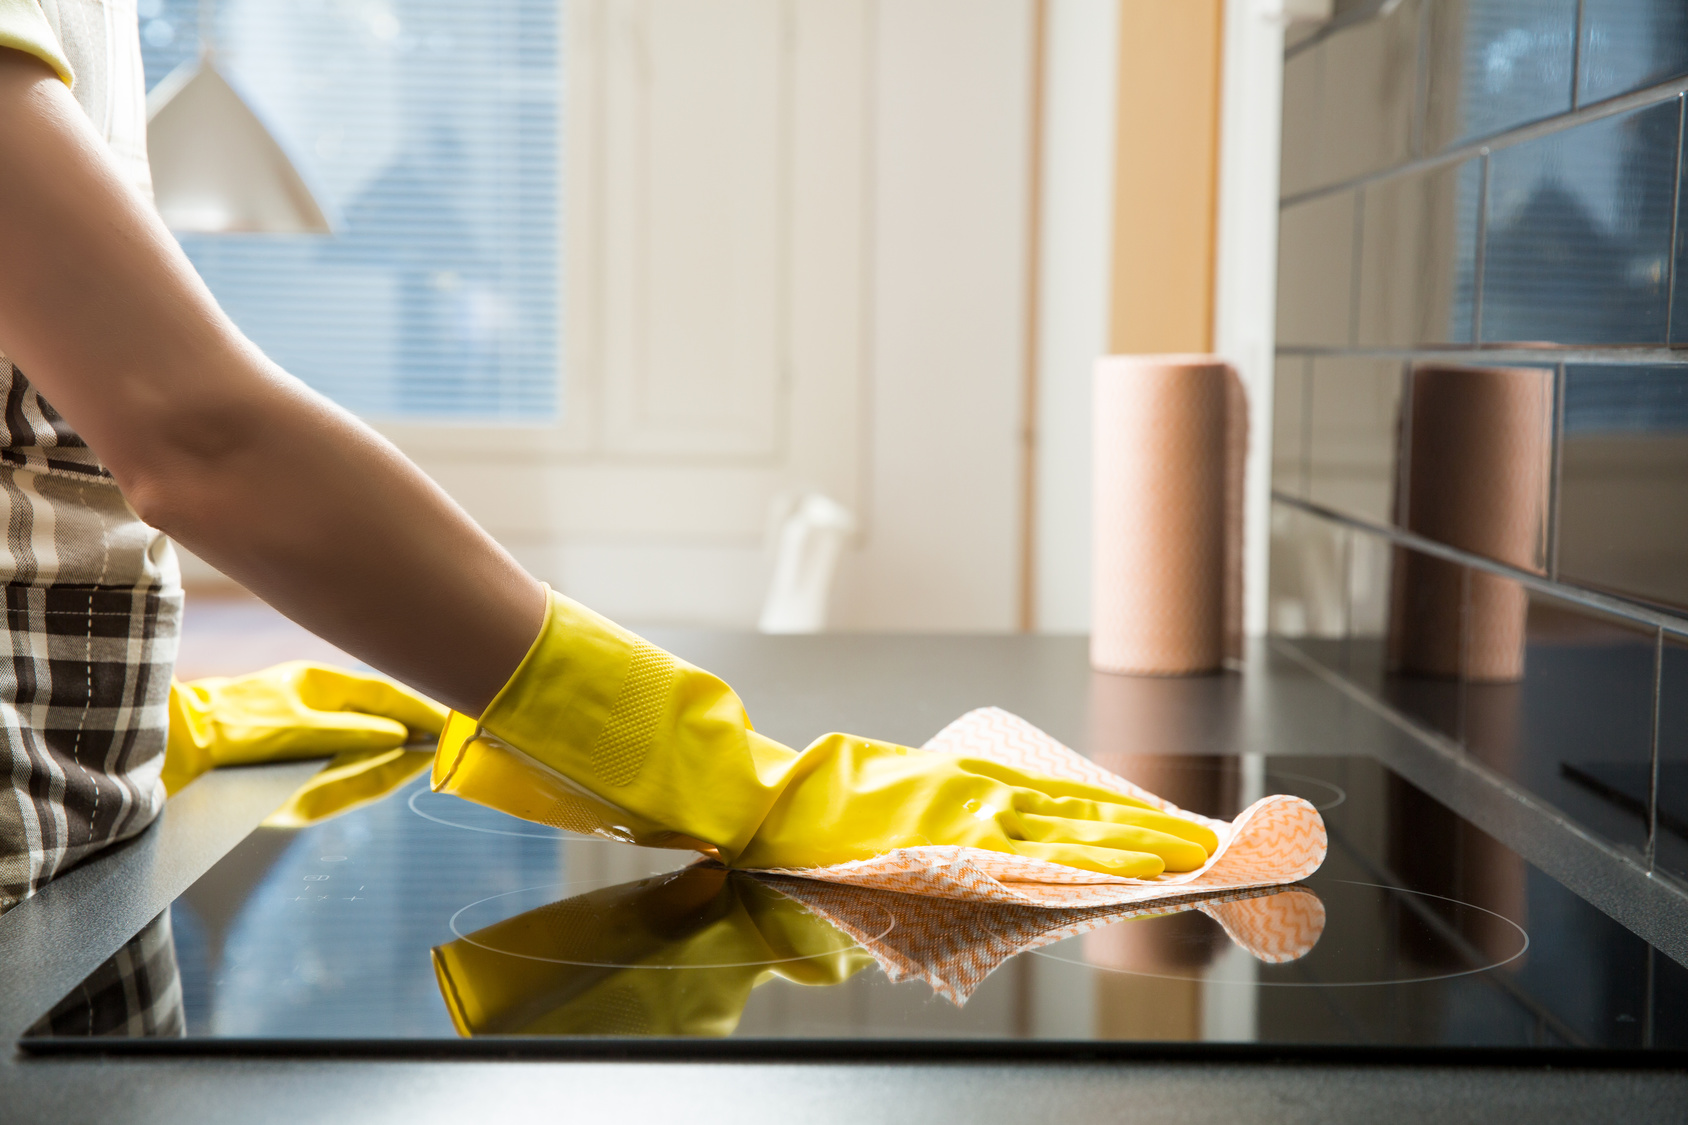 residential cleaning services blog